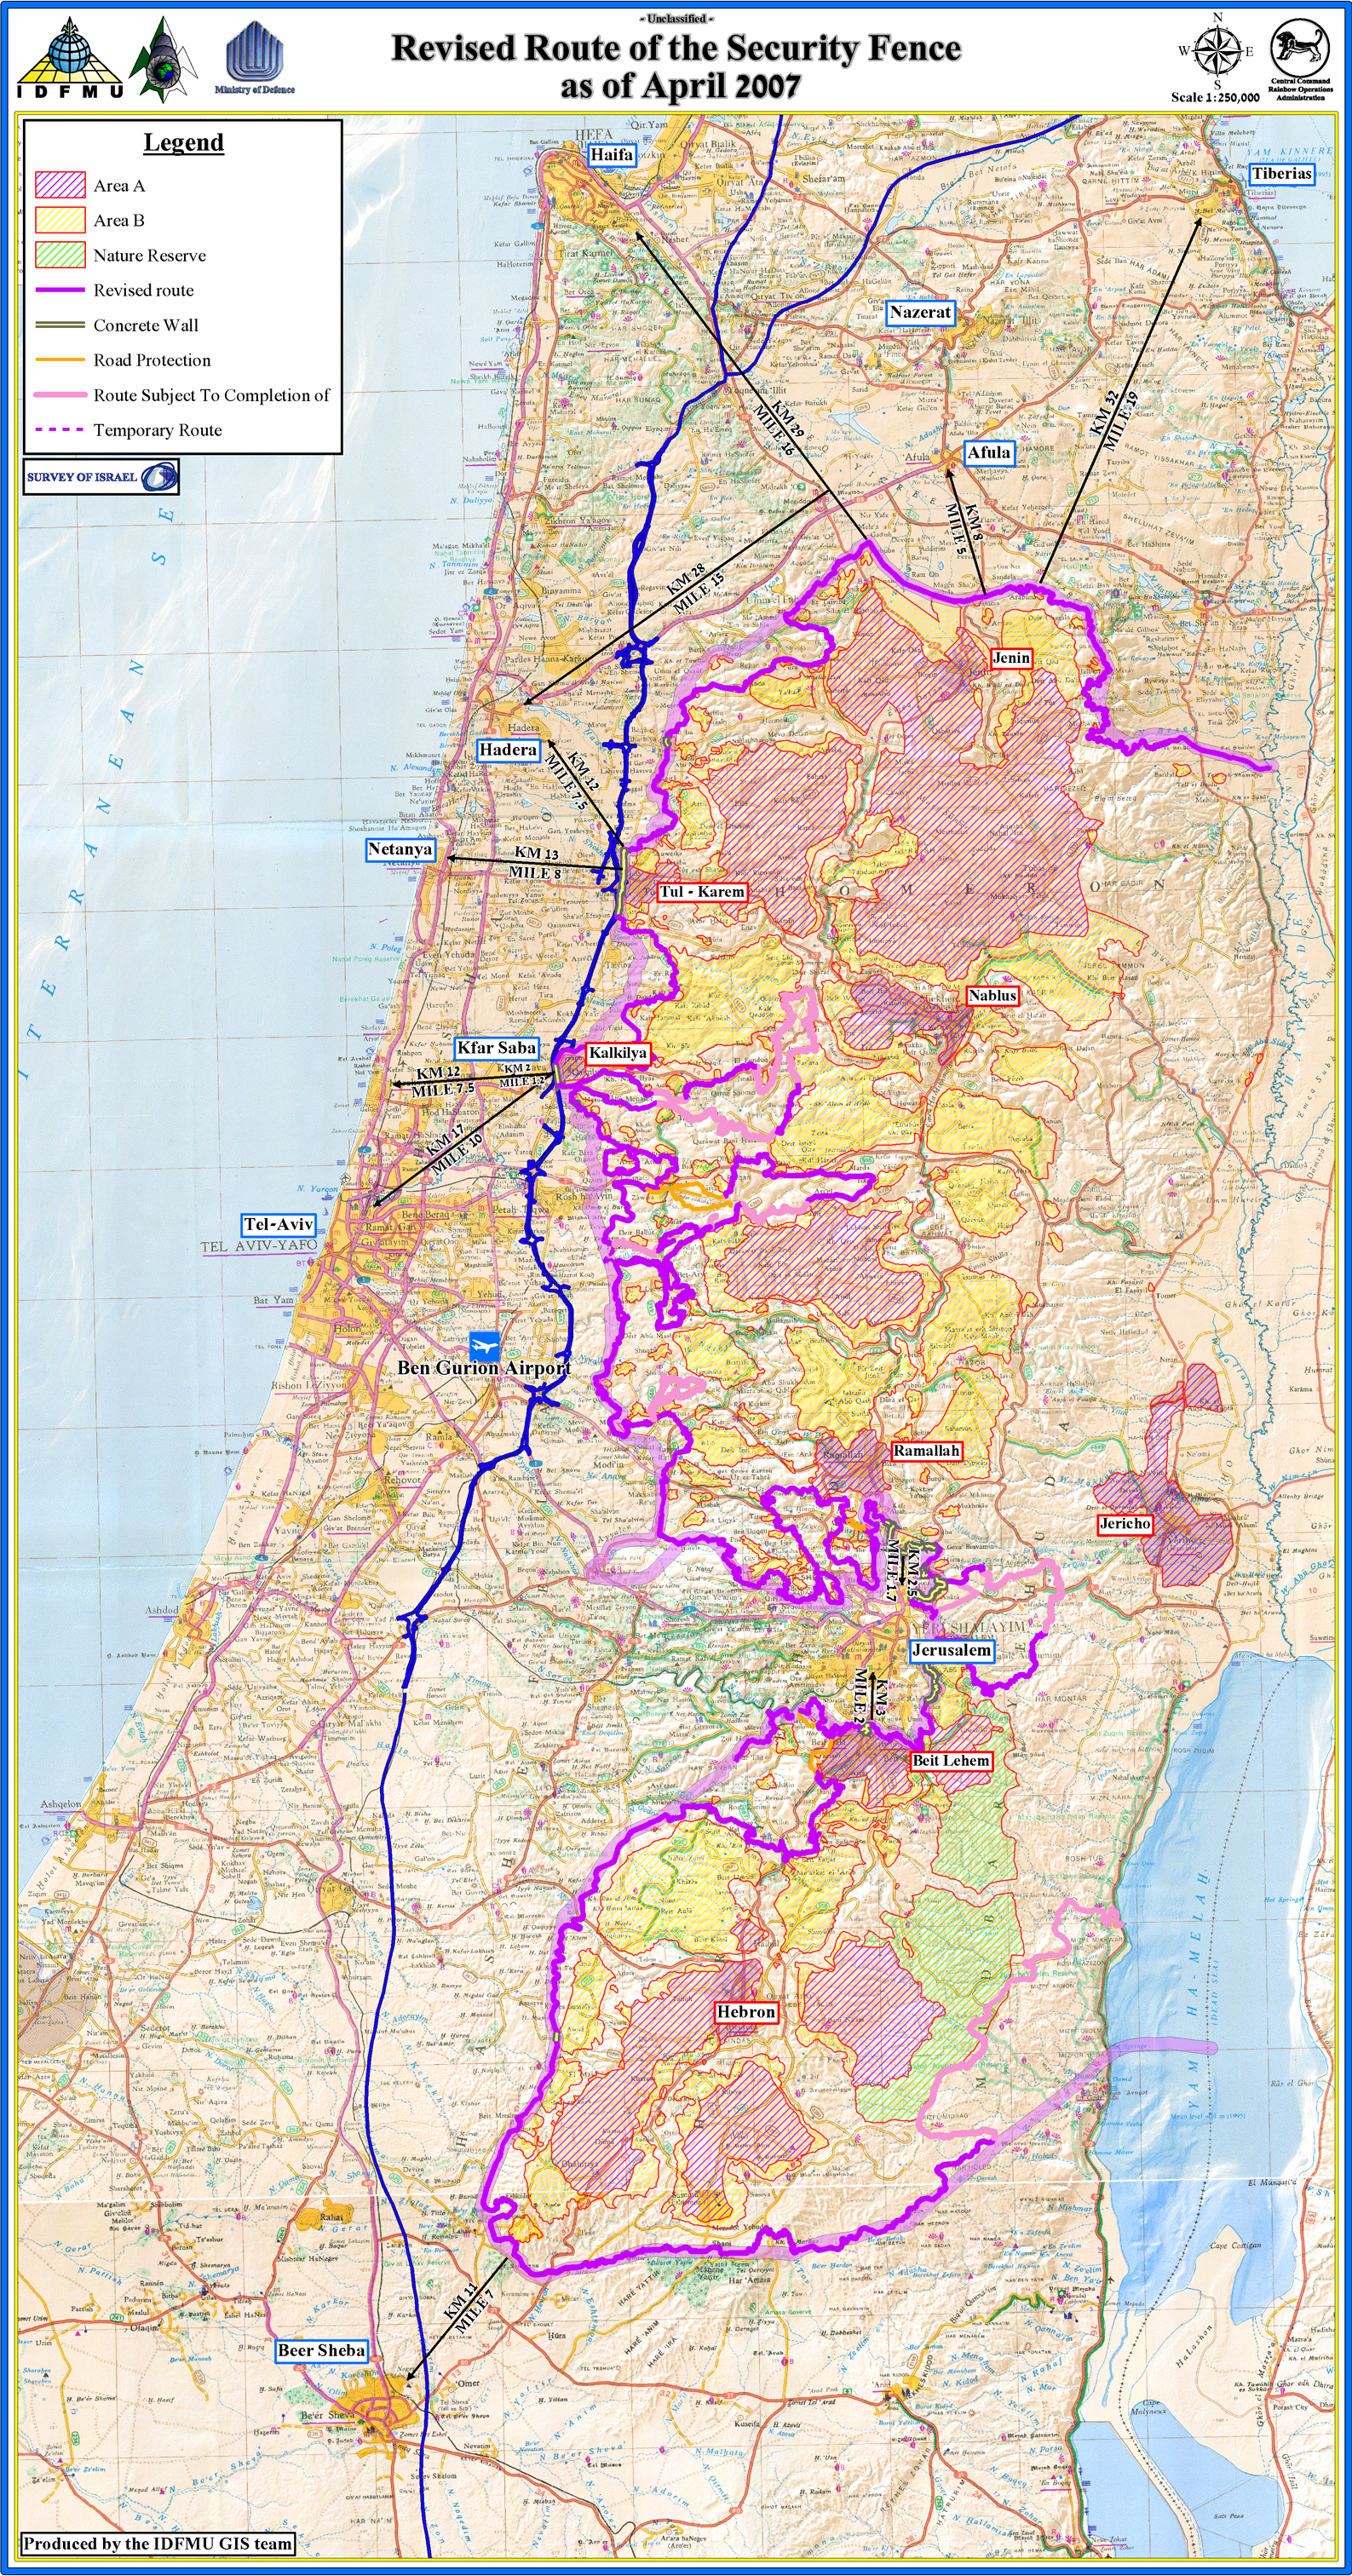 Approved Route of the Separation Barrier - April 2007 - Map - English